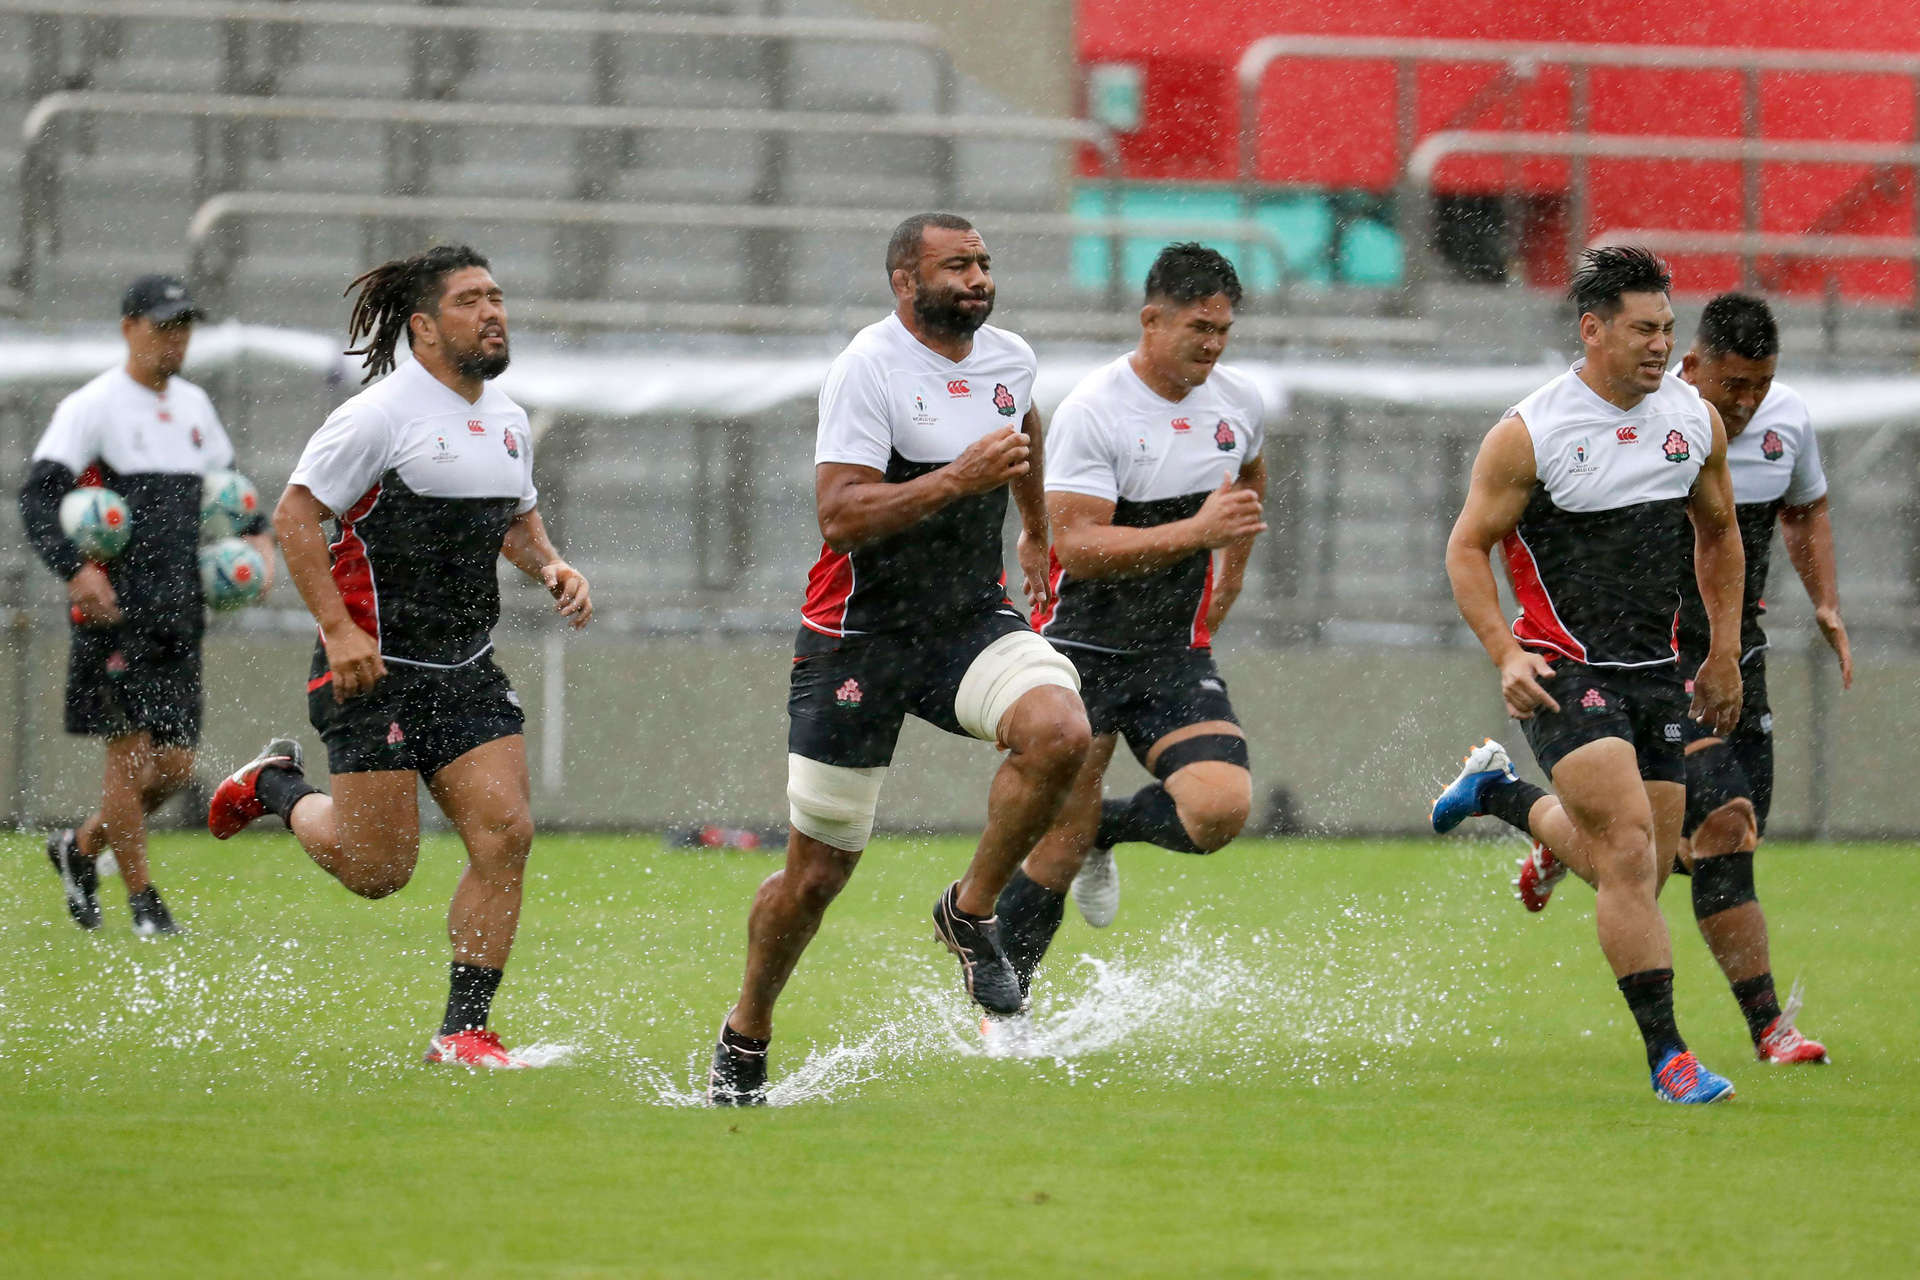 Japan's sneaky strategy to prepare for Springboks